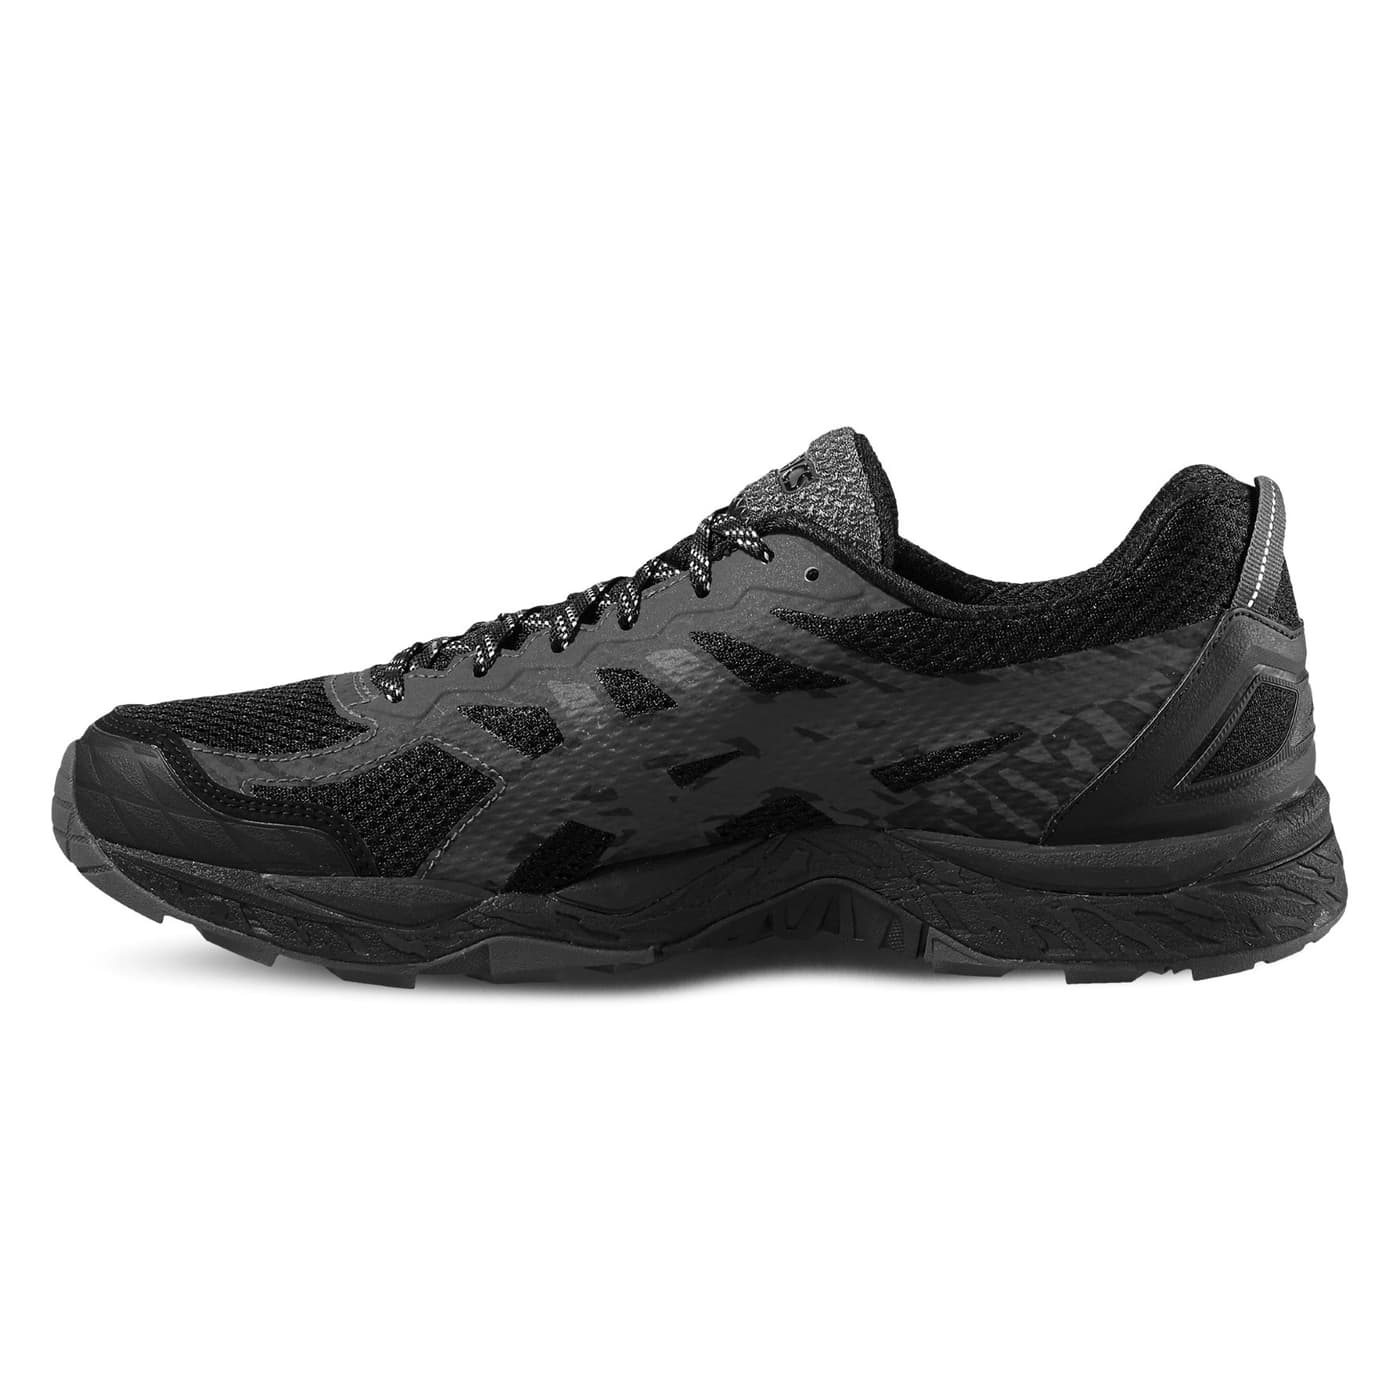 asics gel fuji trabuco 5 gtx herren runningschuh migros. Black Bedroom Furniture Sets. Home Design Ideas